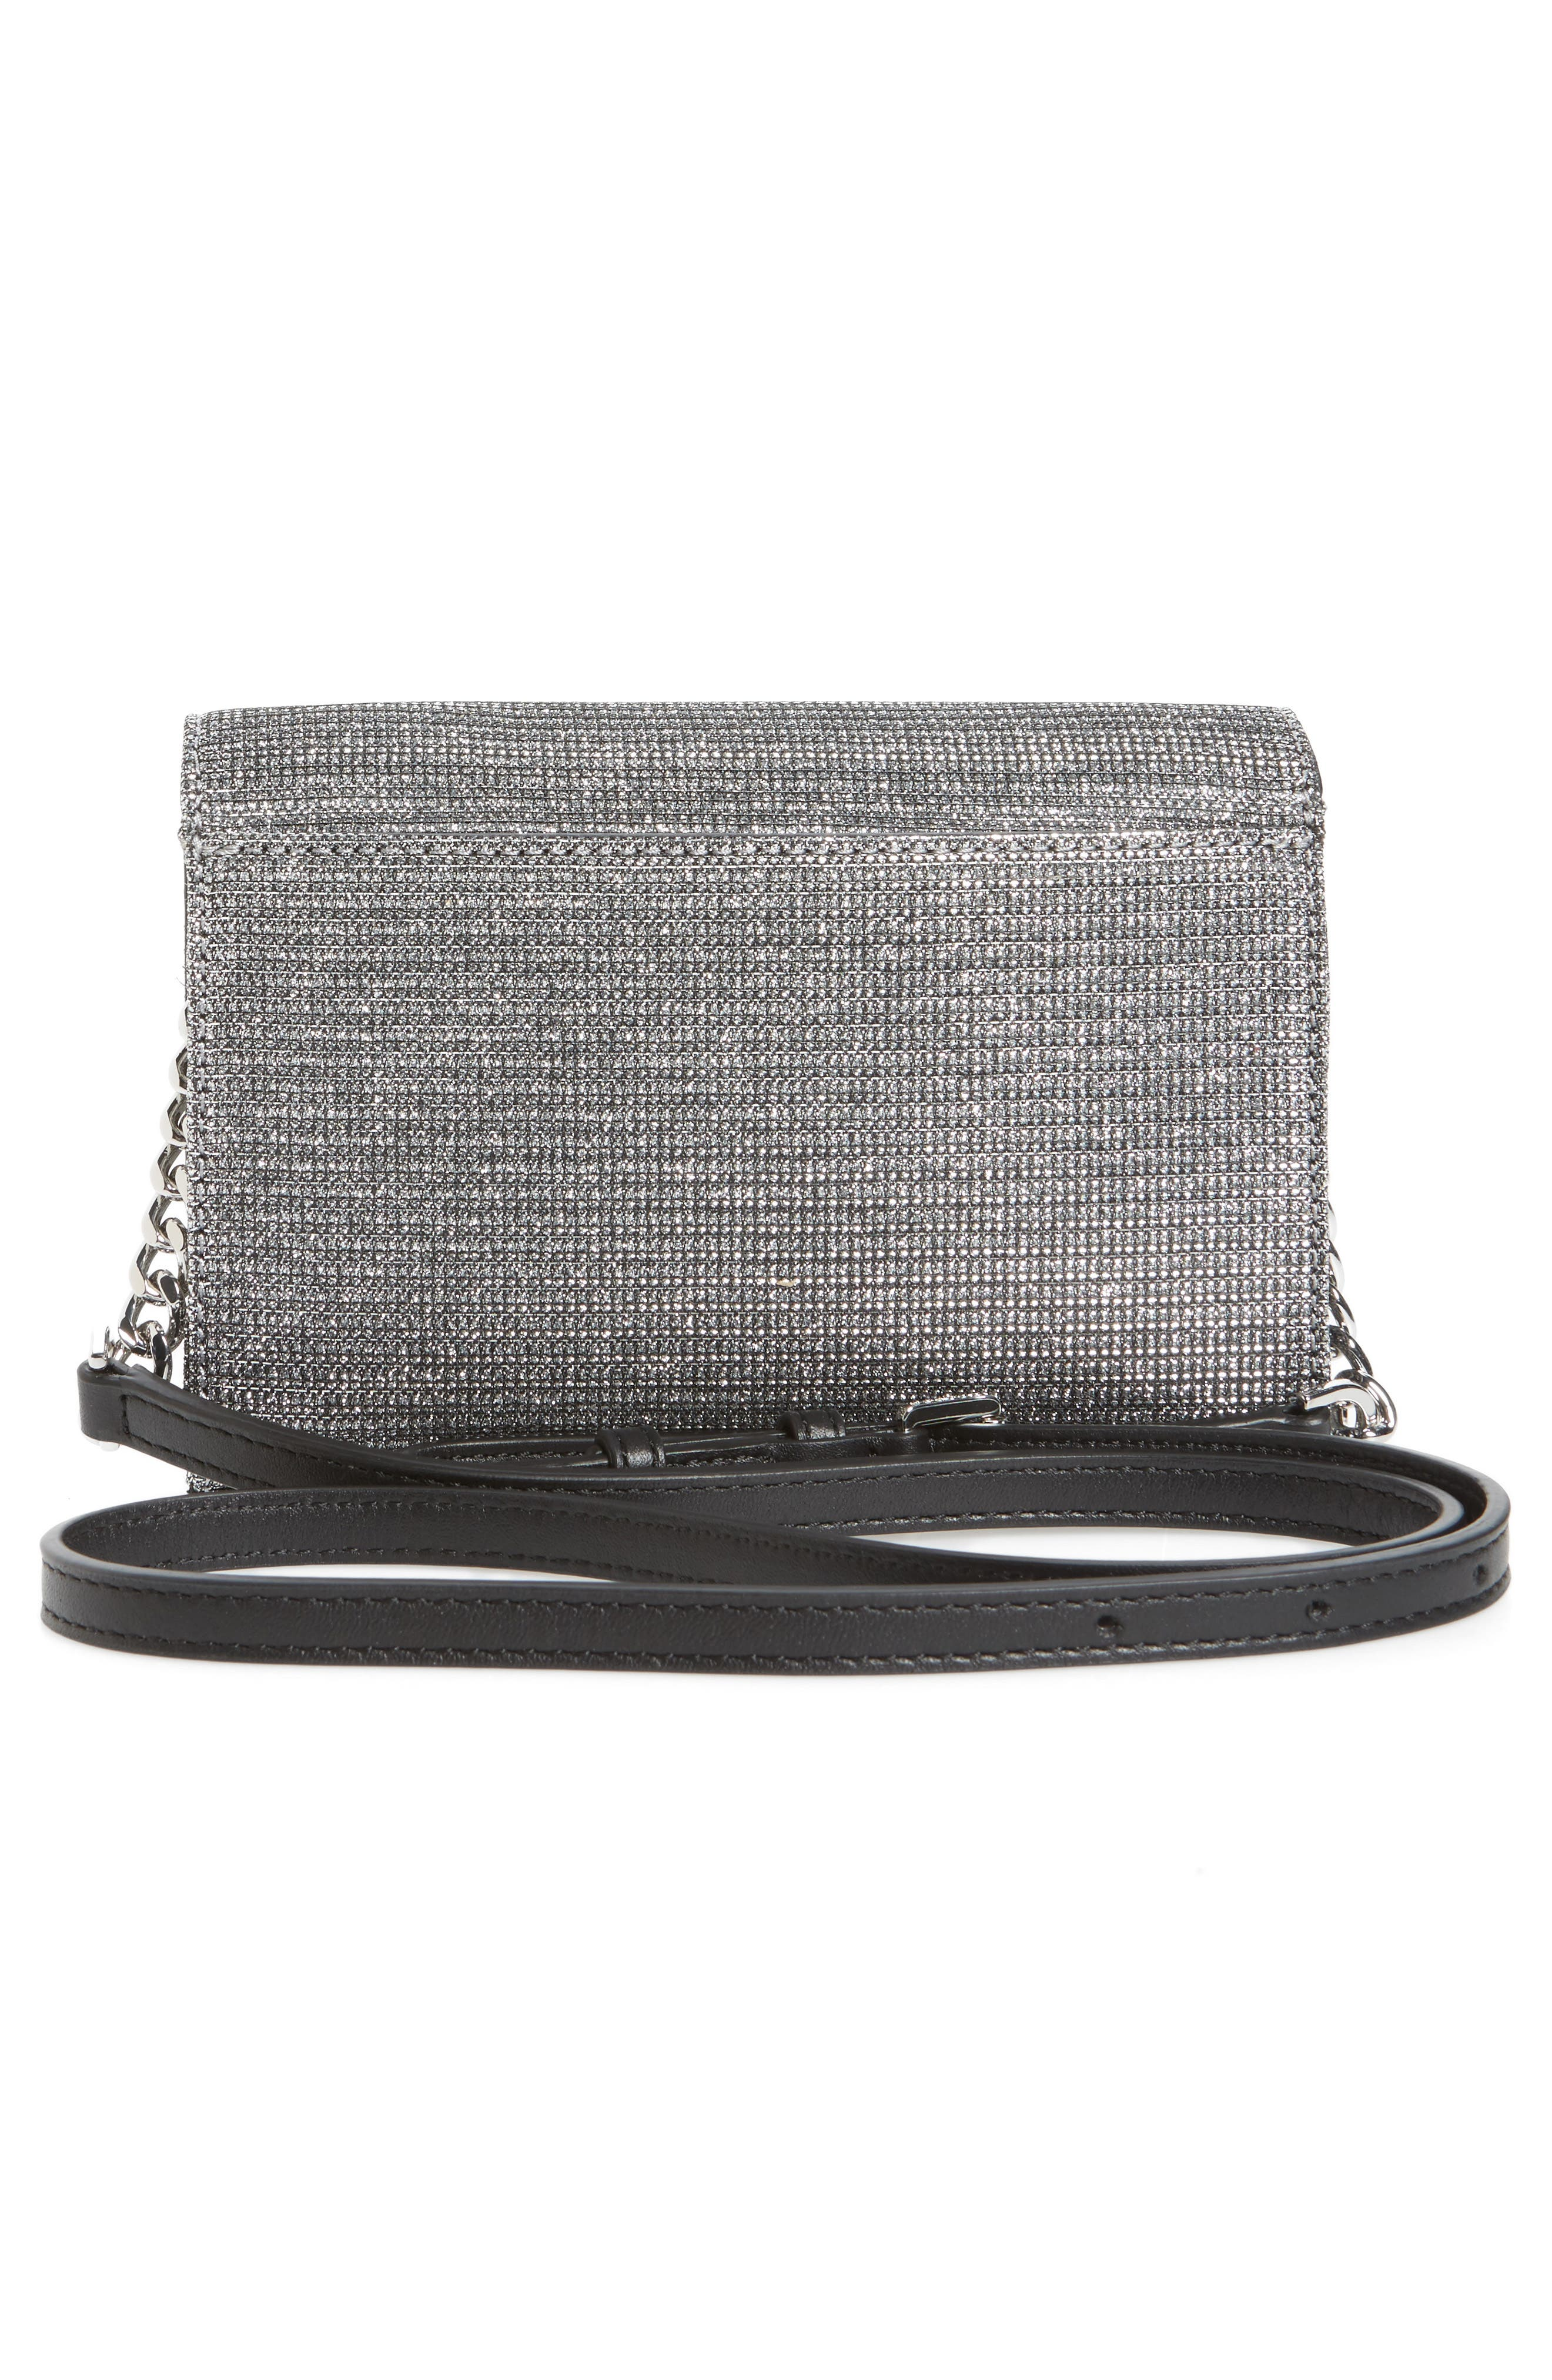 Medium Ruby Convertible Leather Clutch,                             Alternate thumbnail 3, color,                             Black/ Silver